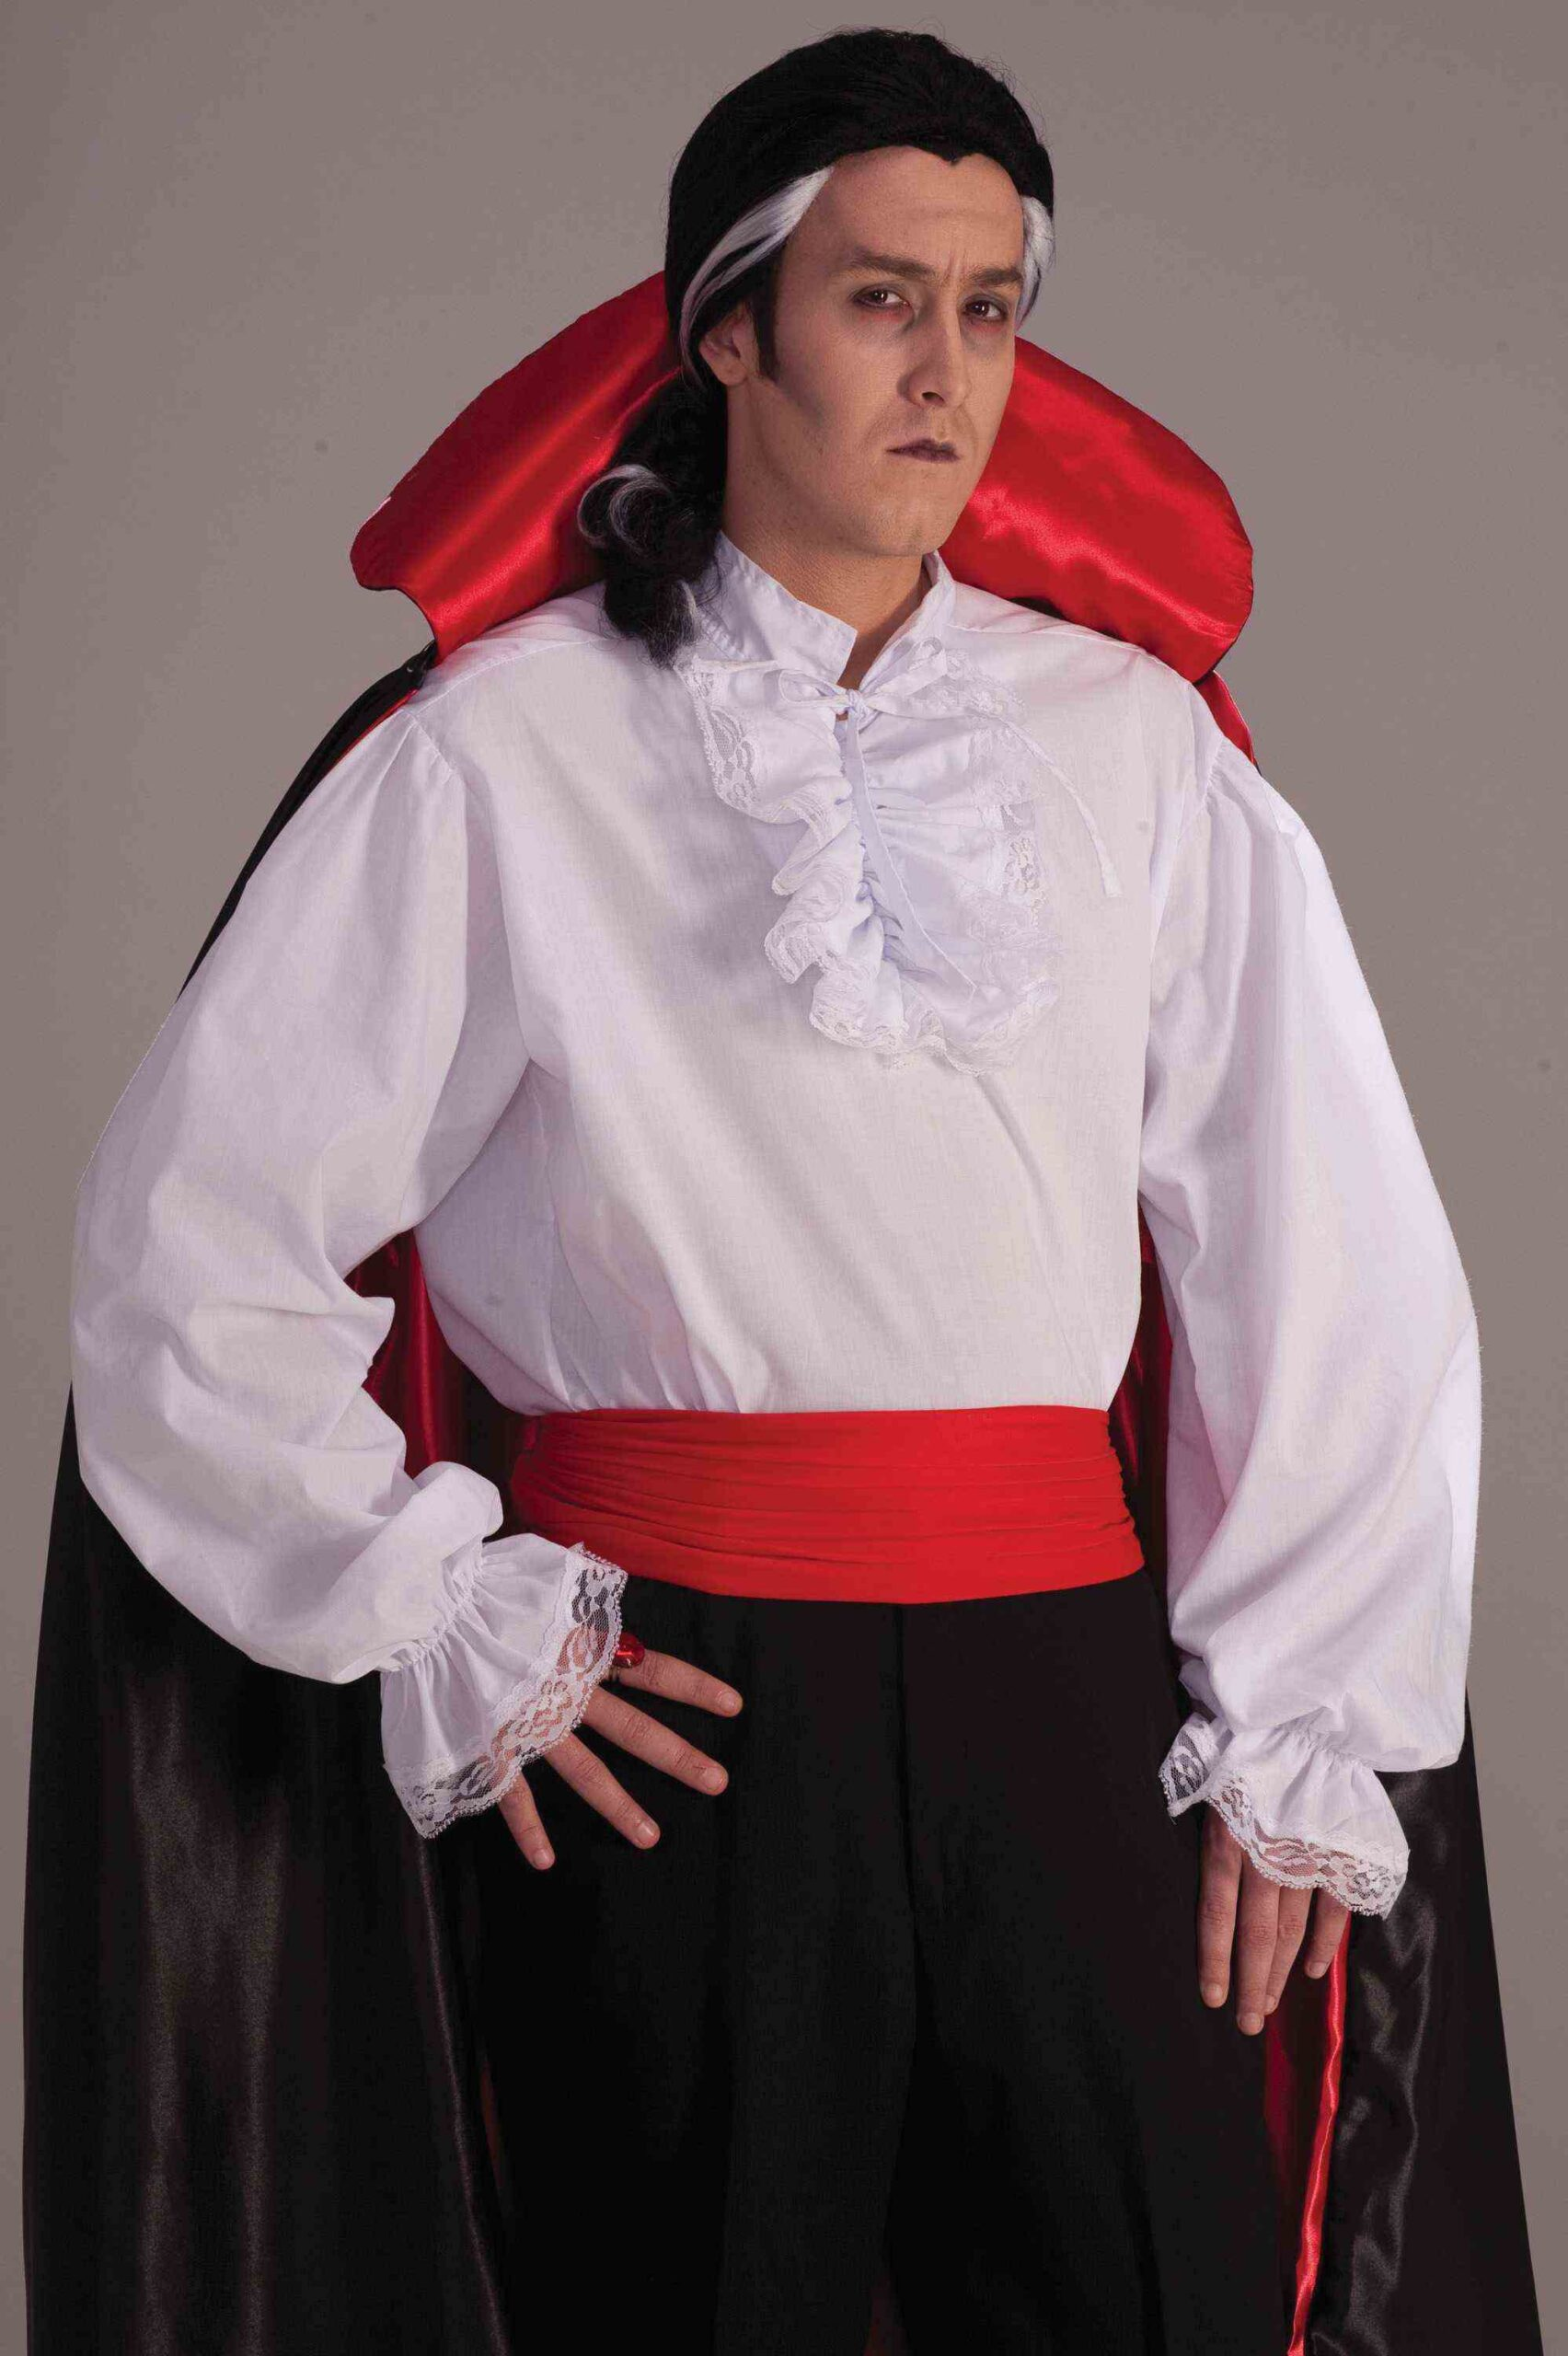 Adult male in dracula costume